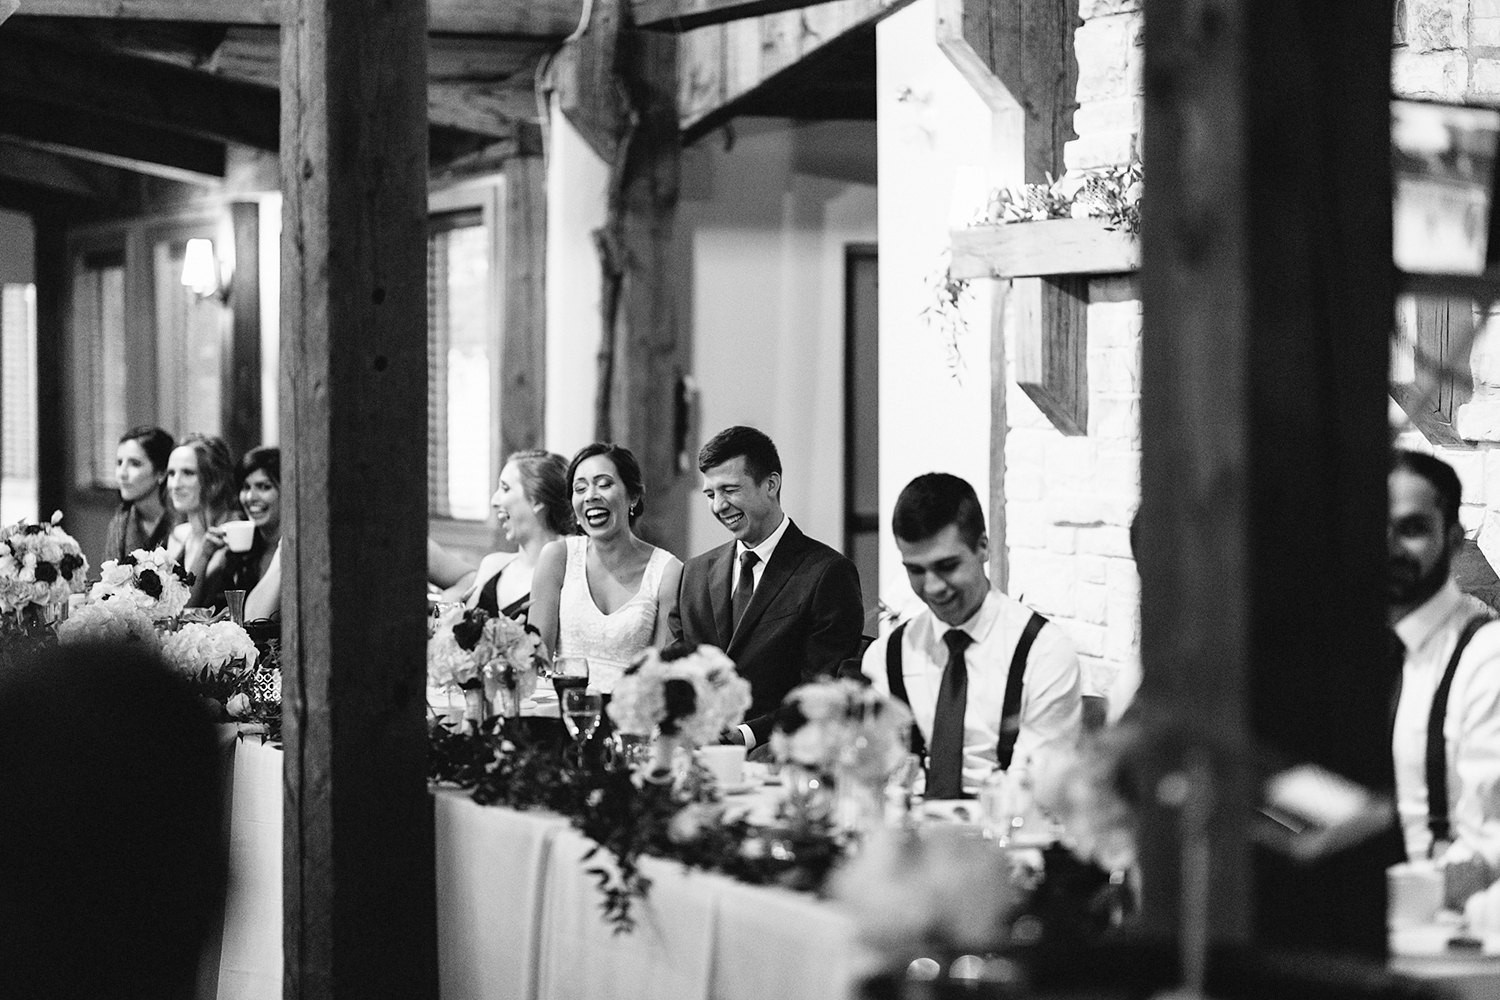 reception-diy-bride-and-groom-speeches-bride-and-groom-laughing-toronto's-best-analog-documentary-wedding-photographers-candid-photography-london-ontario-wedding-inspiration.jpg